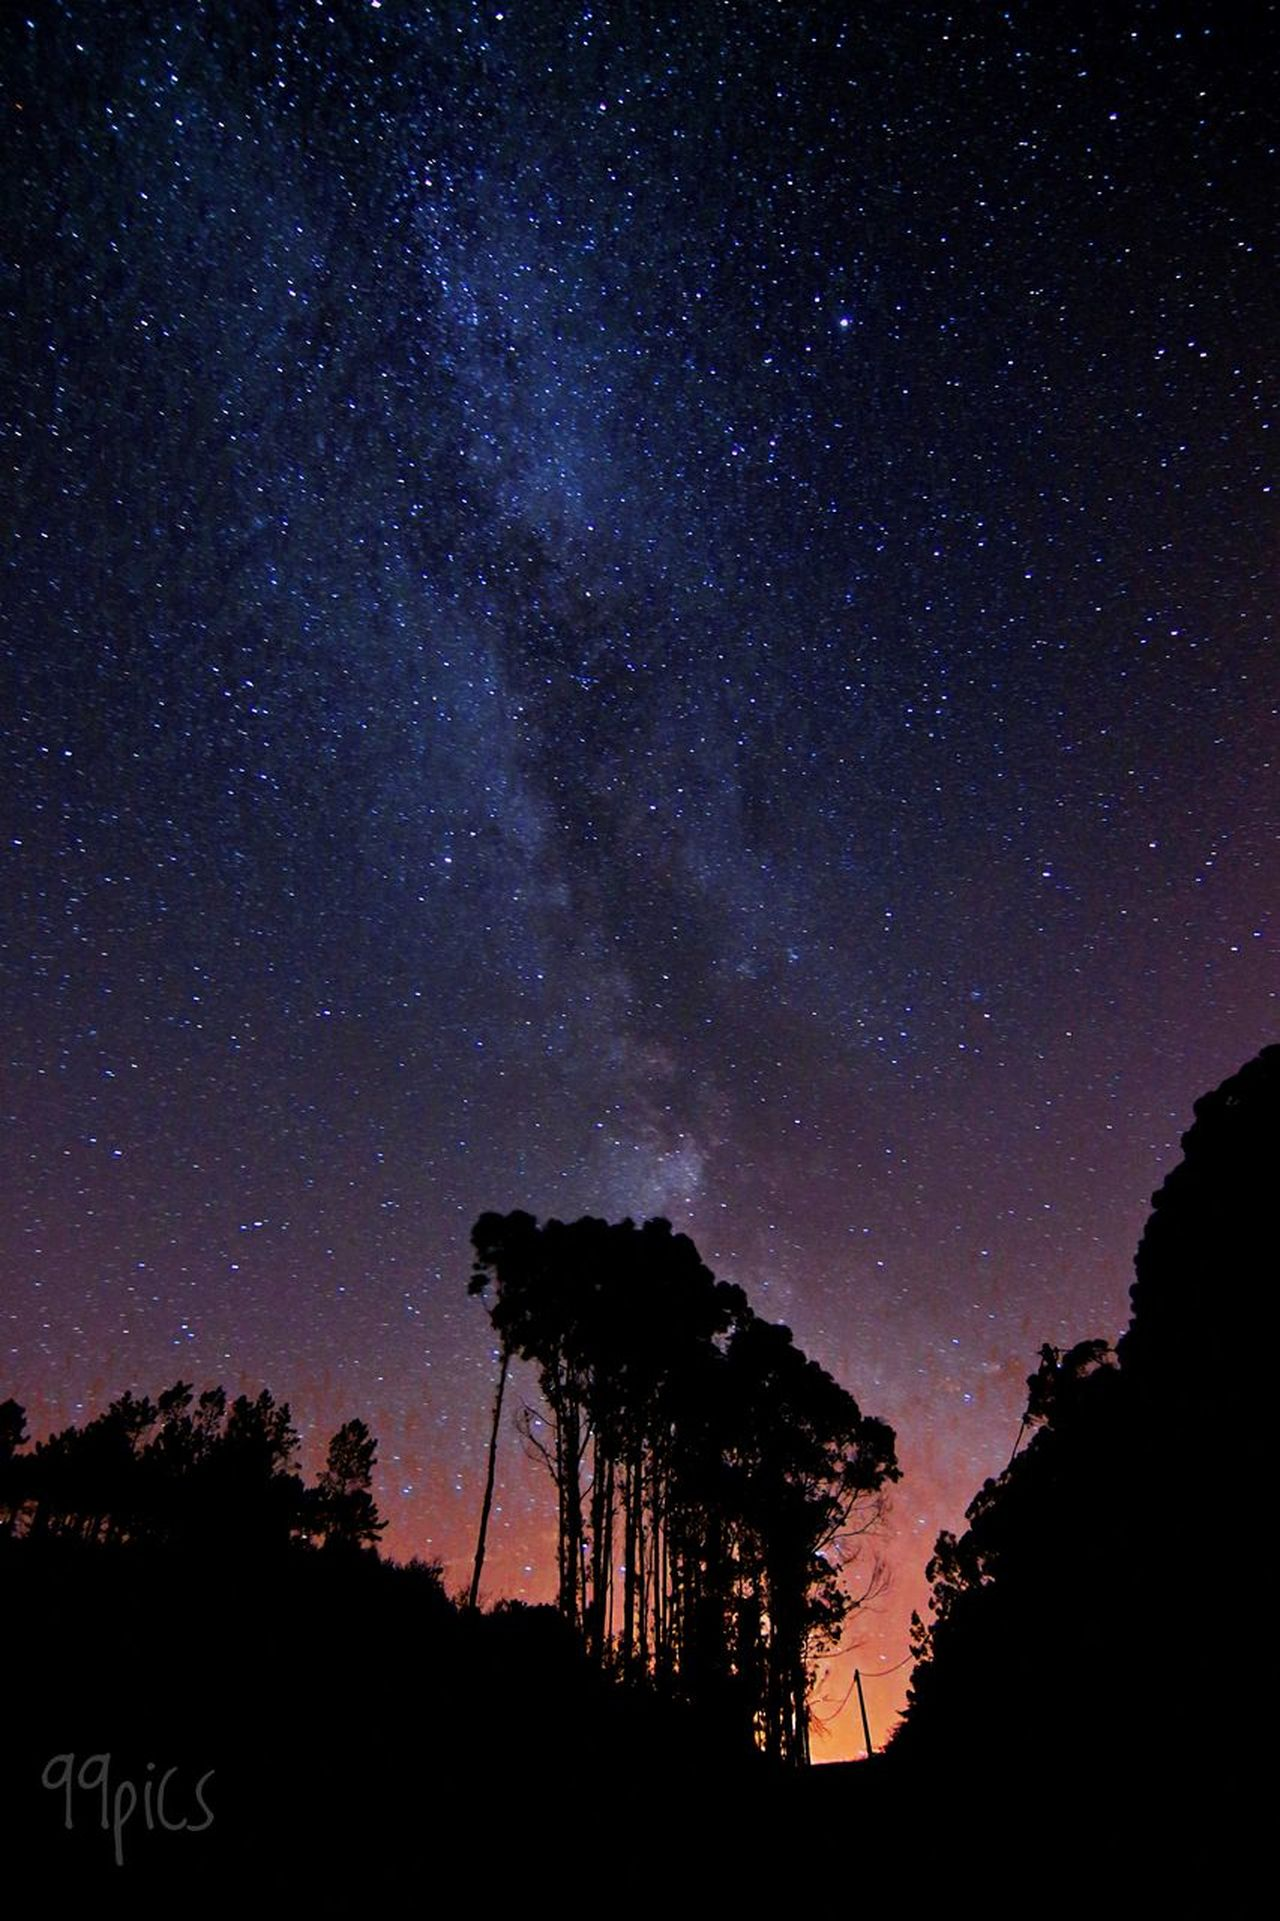 Fuegos artificiales. Star - Space Silhouette Astronomy Low Angle View Night Tranquility Sky Nature Beauty In Nature No People Tree Scenics Outdoors Galaxy Milky Way Constellation Space Light - Natural Phenomenon Nocturna Simple Moment Via Lactea